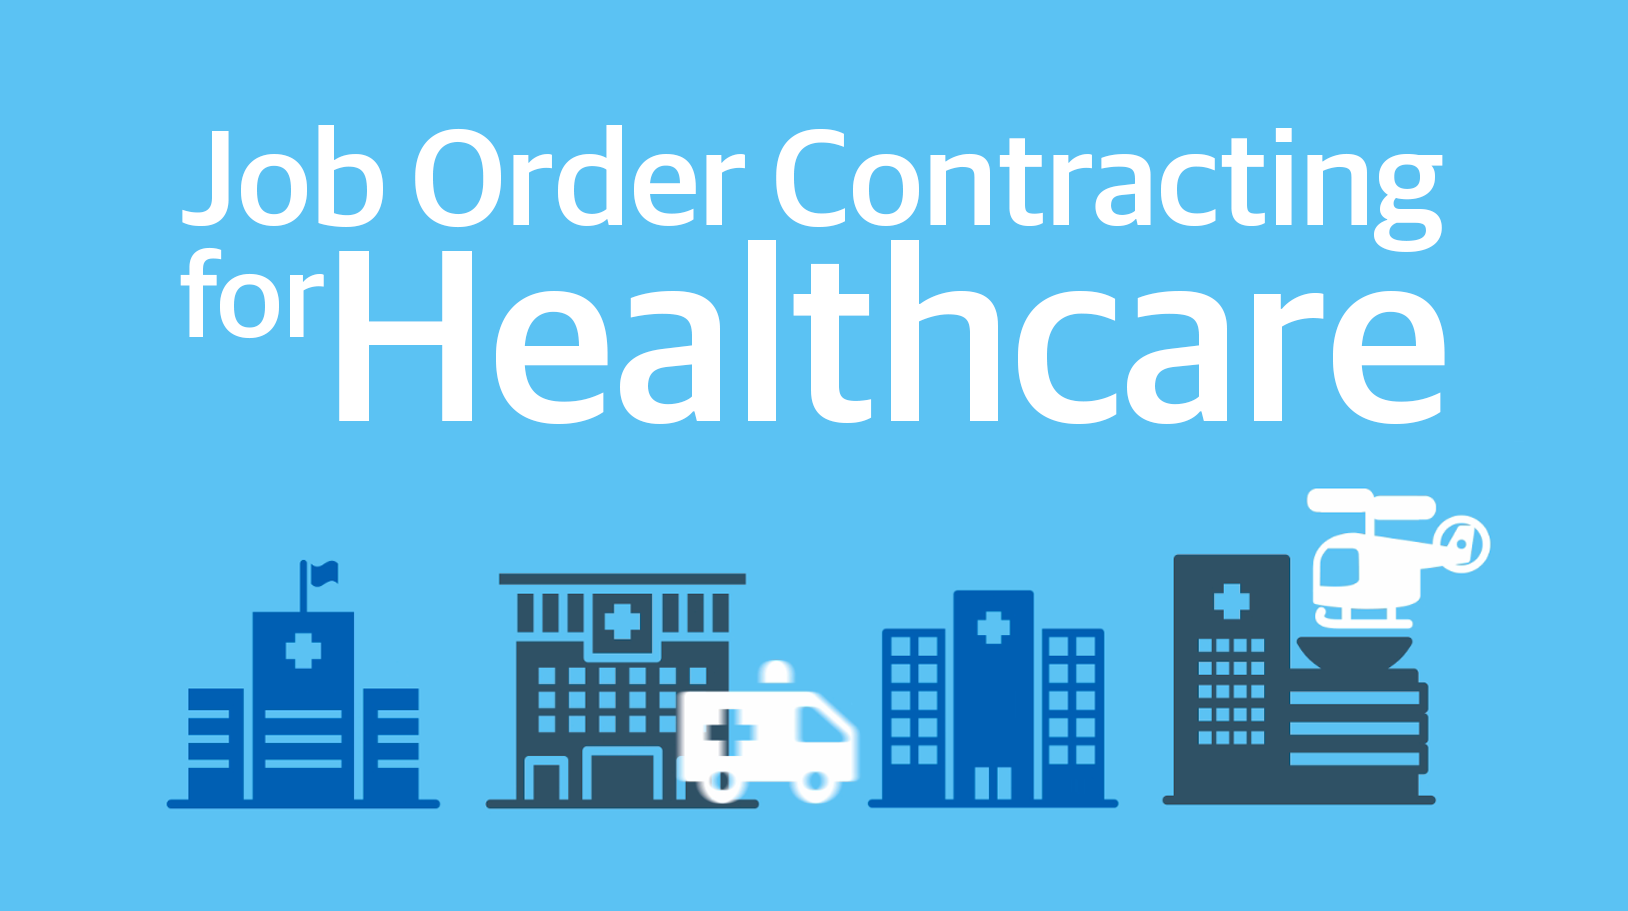 Benefits of Job Order Contracting for Healthcare